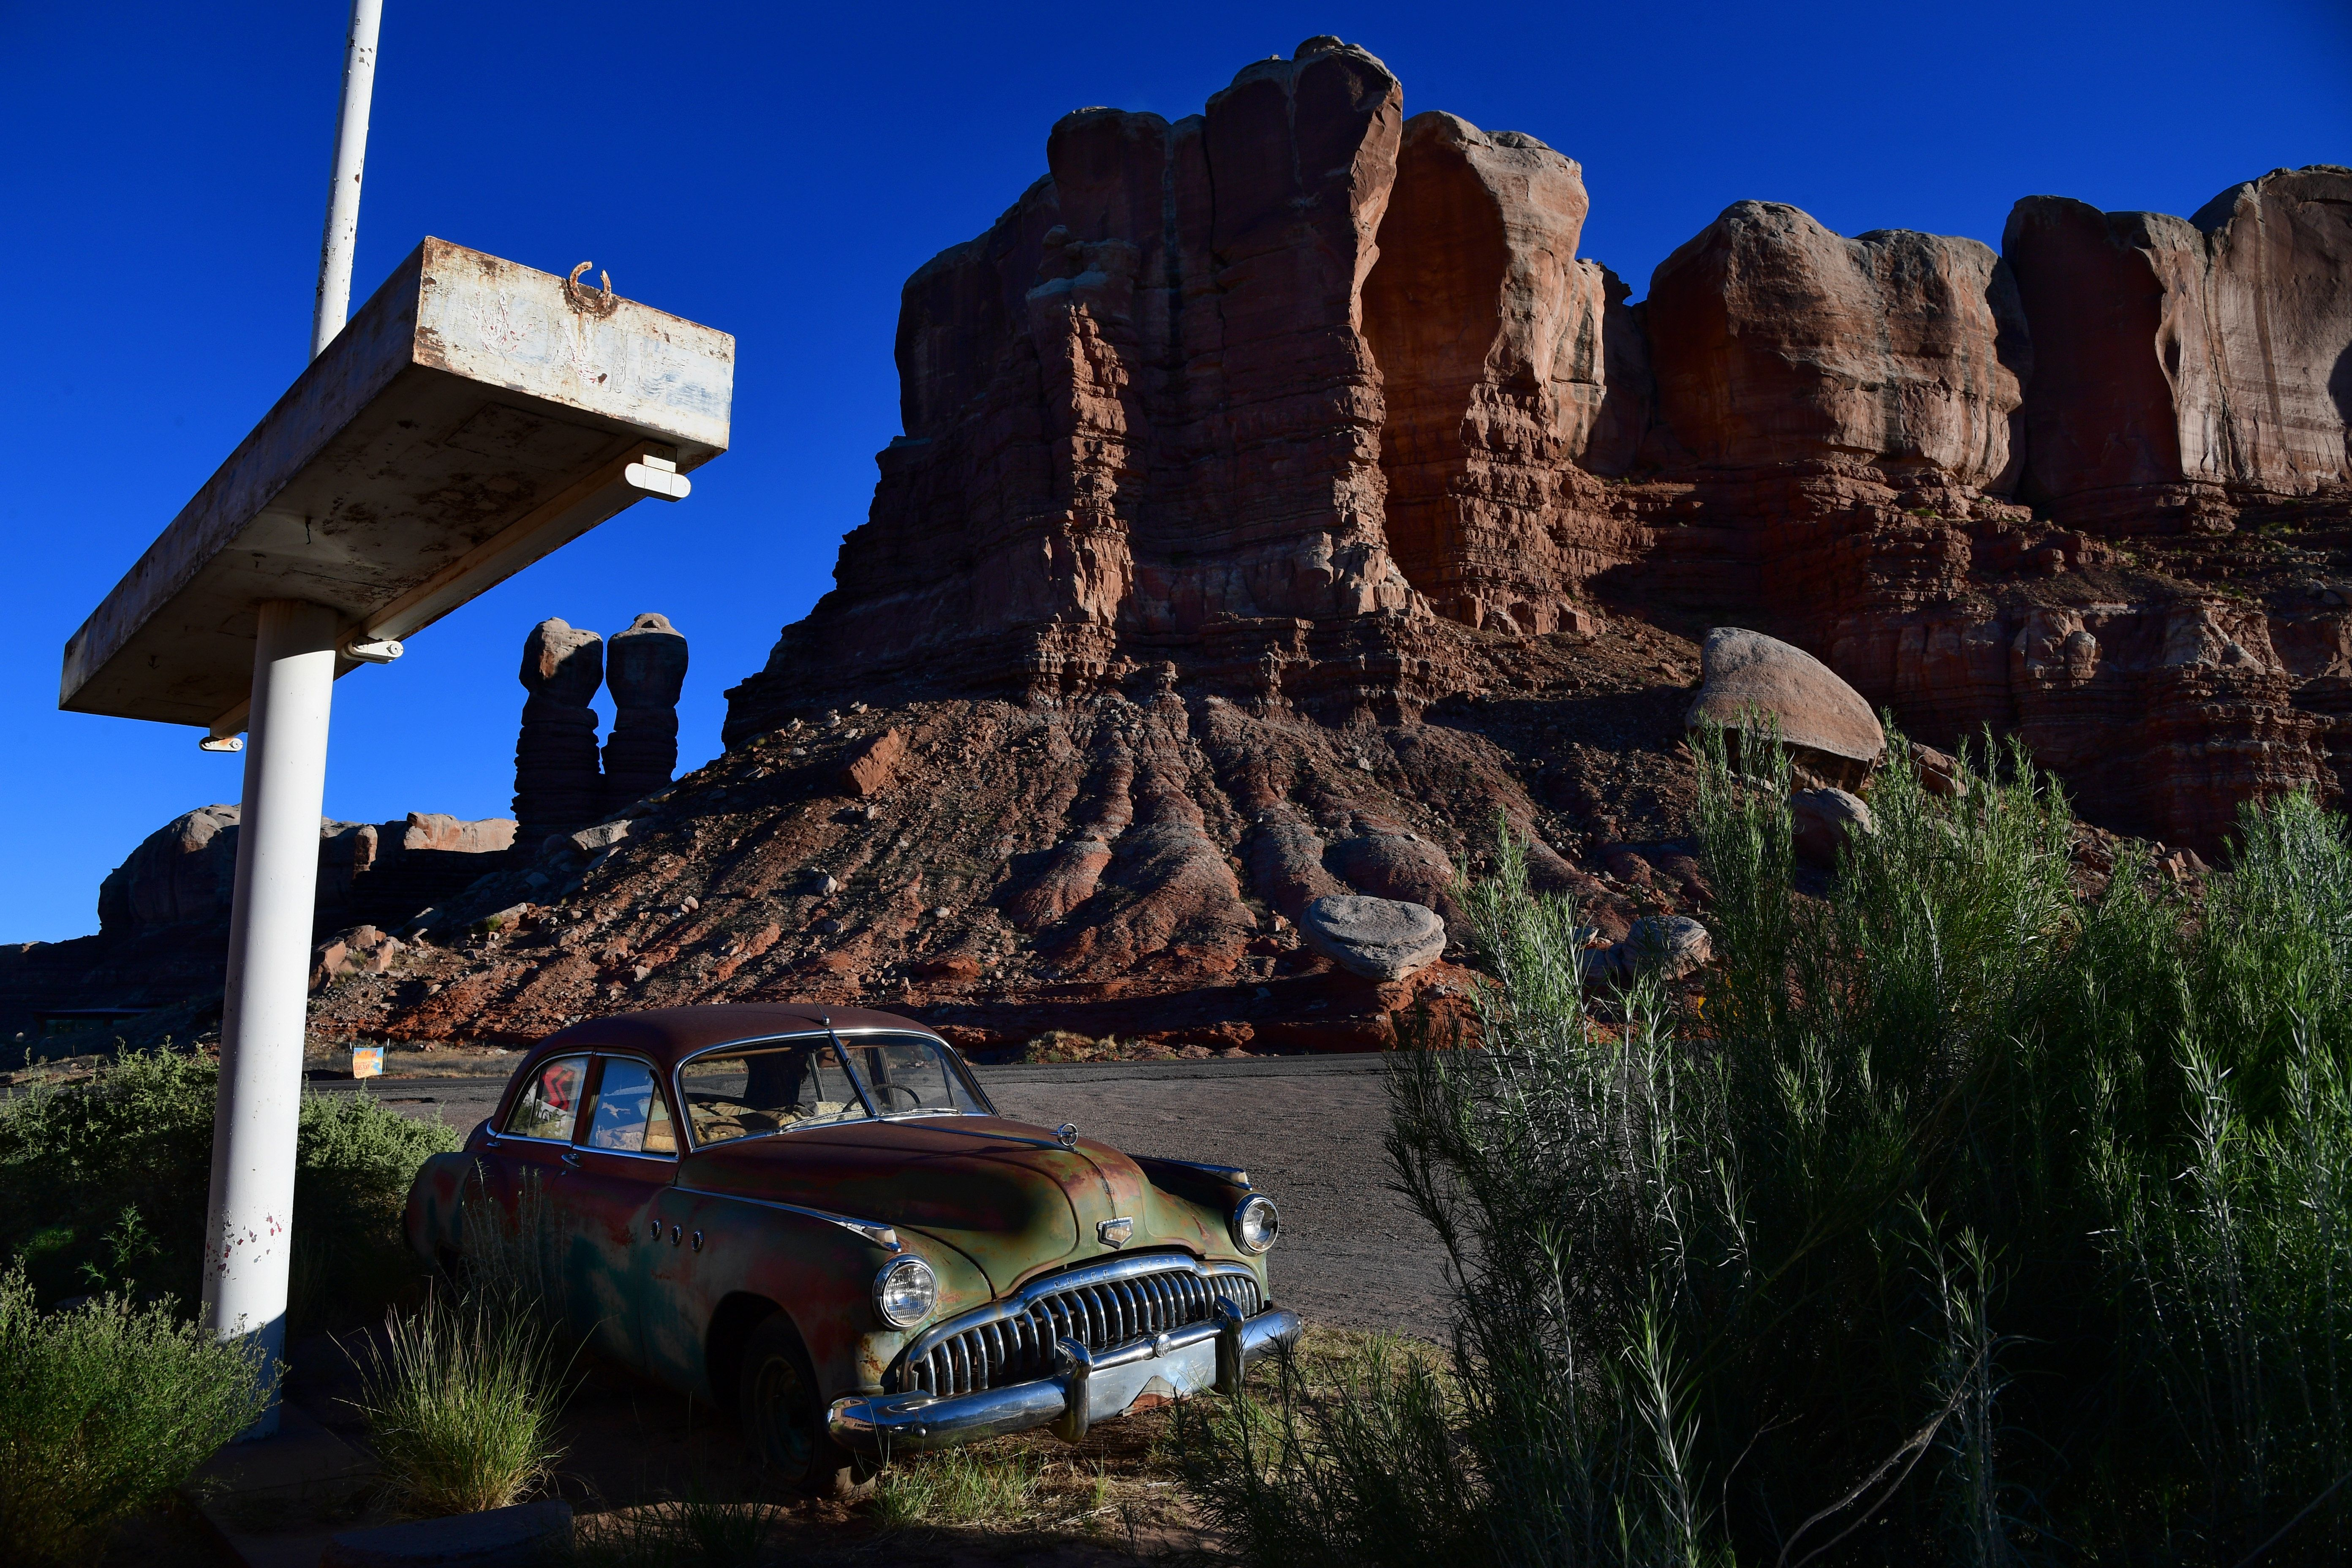 BLUFF, UT - JUNE 13: A former gas station turned into an art gallery called Cow Canyon Trading Post features a vintage Buick Super Eight with a backdrop of Twin Rocks, part of Bears Ears National Monument seen June 13, 2017 in Bluff, UT.    (Photo by Katherine Frey/The Washington Post via Getty Images)